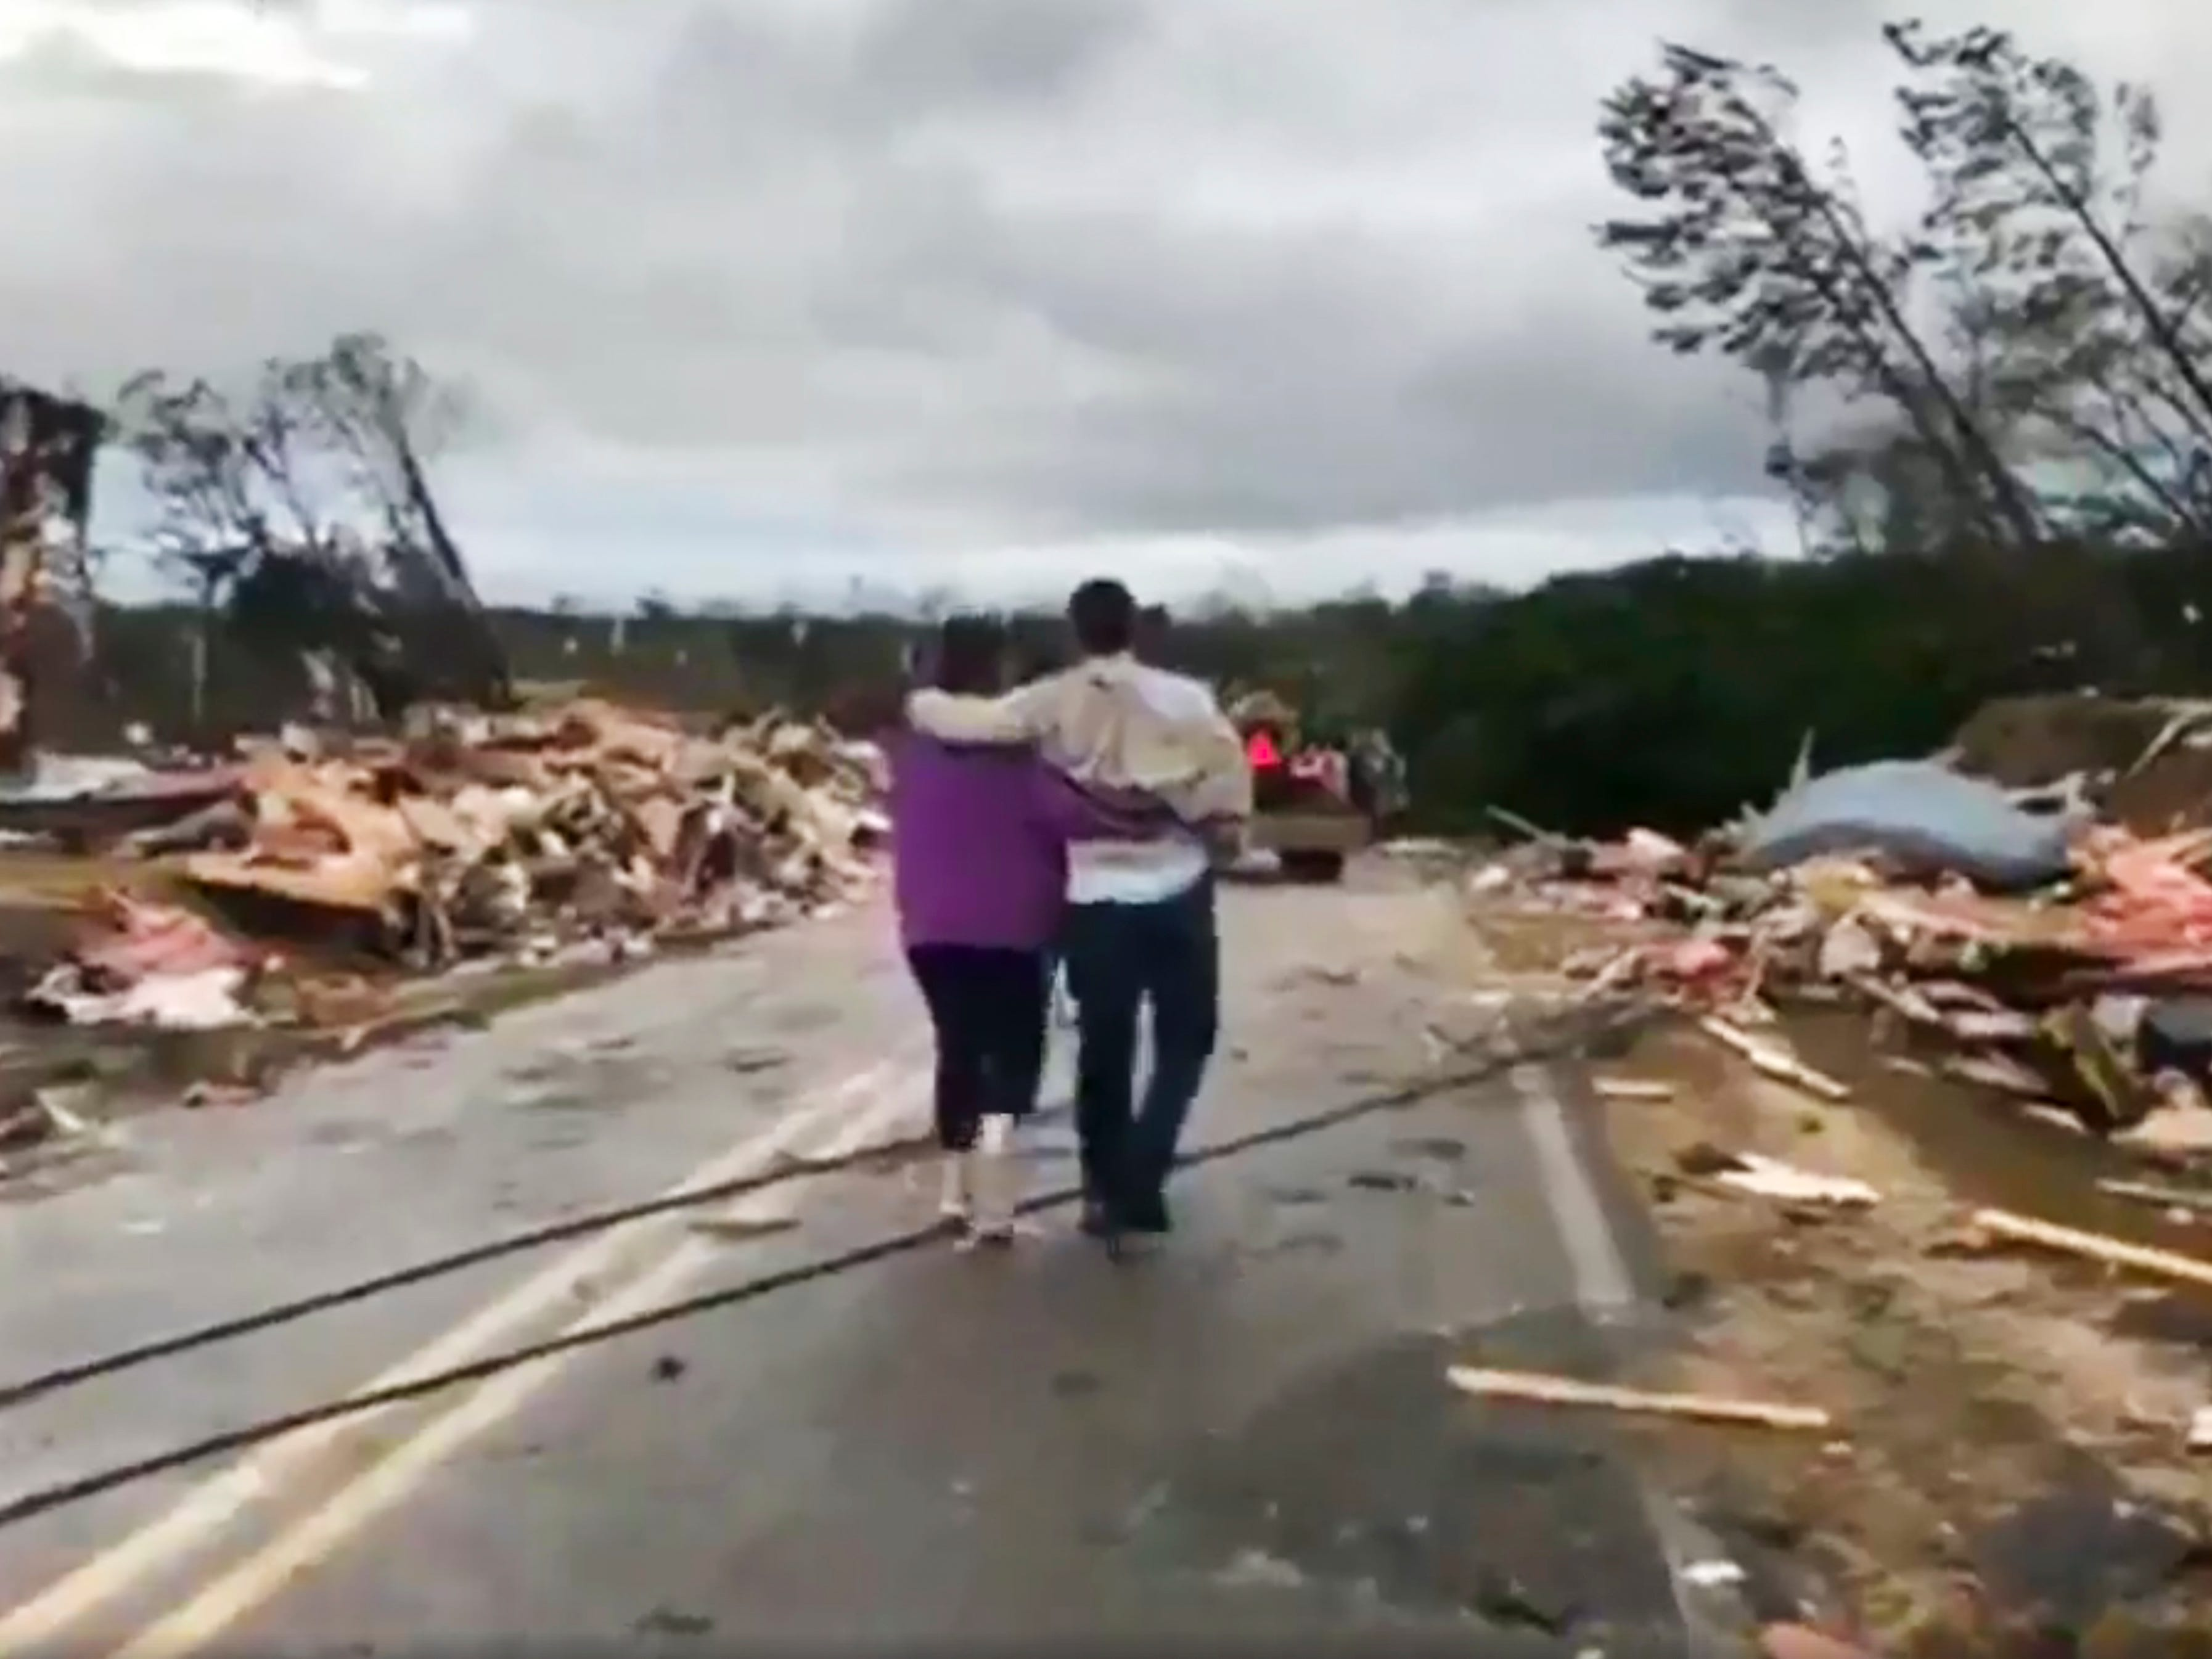 People walk amid debris in Lee County, Ala., after what appeared to be a tornado struck in the area Sunday, March 3, 2019. Severe storms destroyed mobile homes, snapped trees and left a trail of destruction amid weather warnings extending into Georgia, Florida and South Carolina, authorities said. (WKRG-TV via AP) ORG XMIT: WKRG701